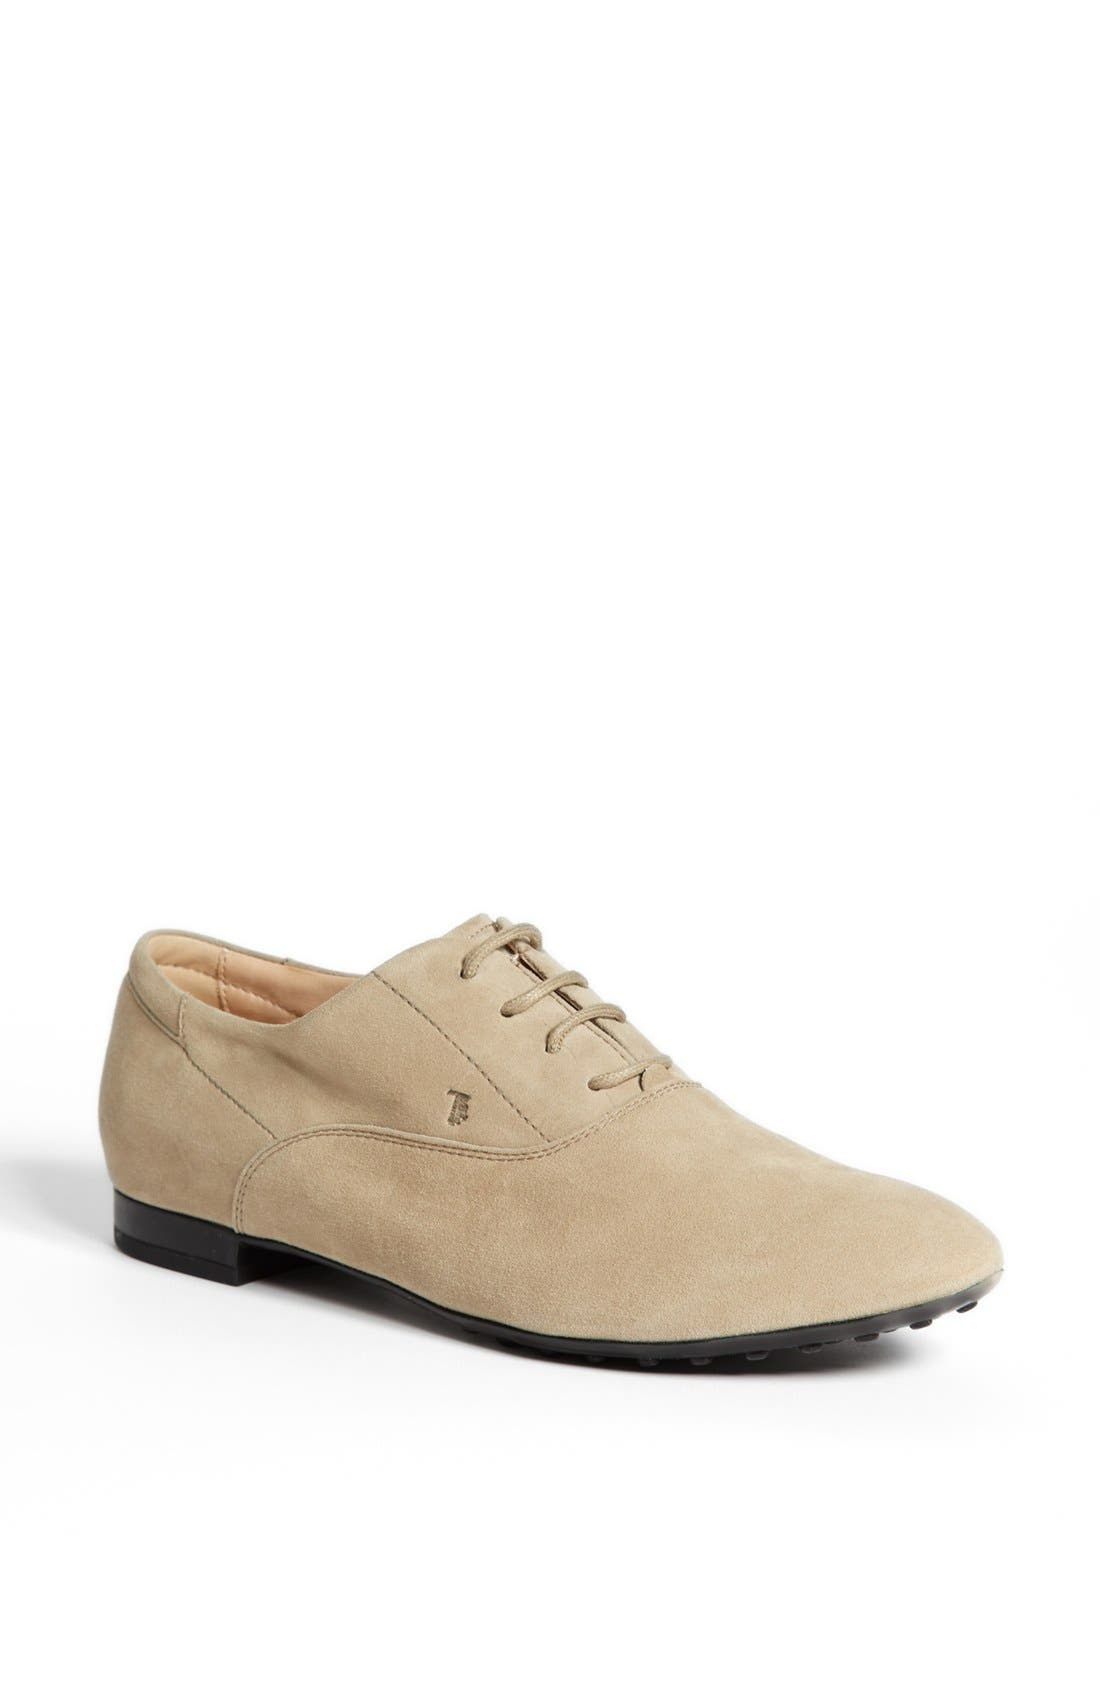 Alternate Image 1 Selected - Tod's Suede Oxford